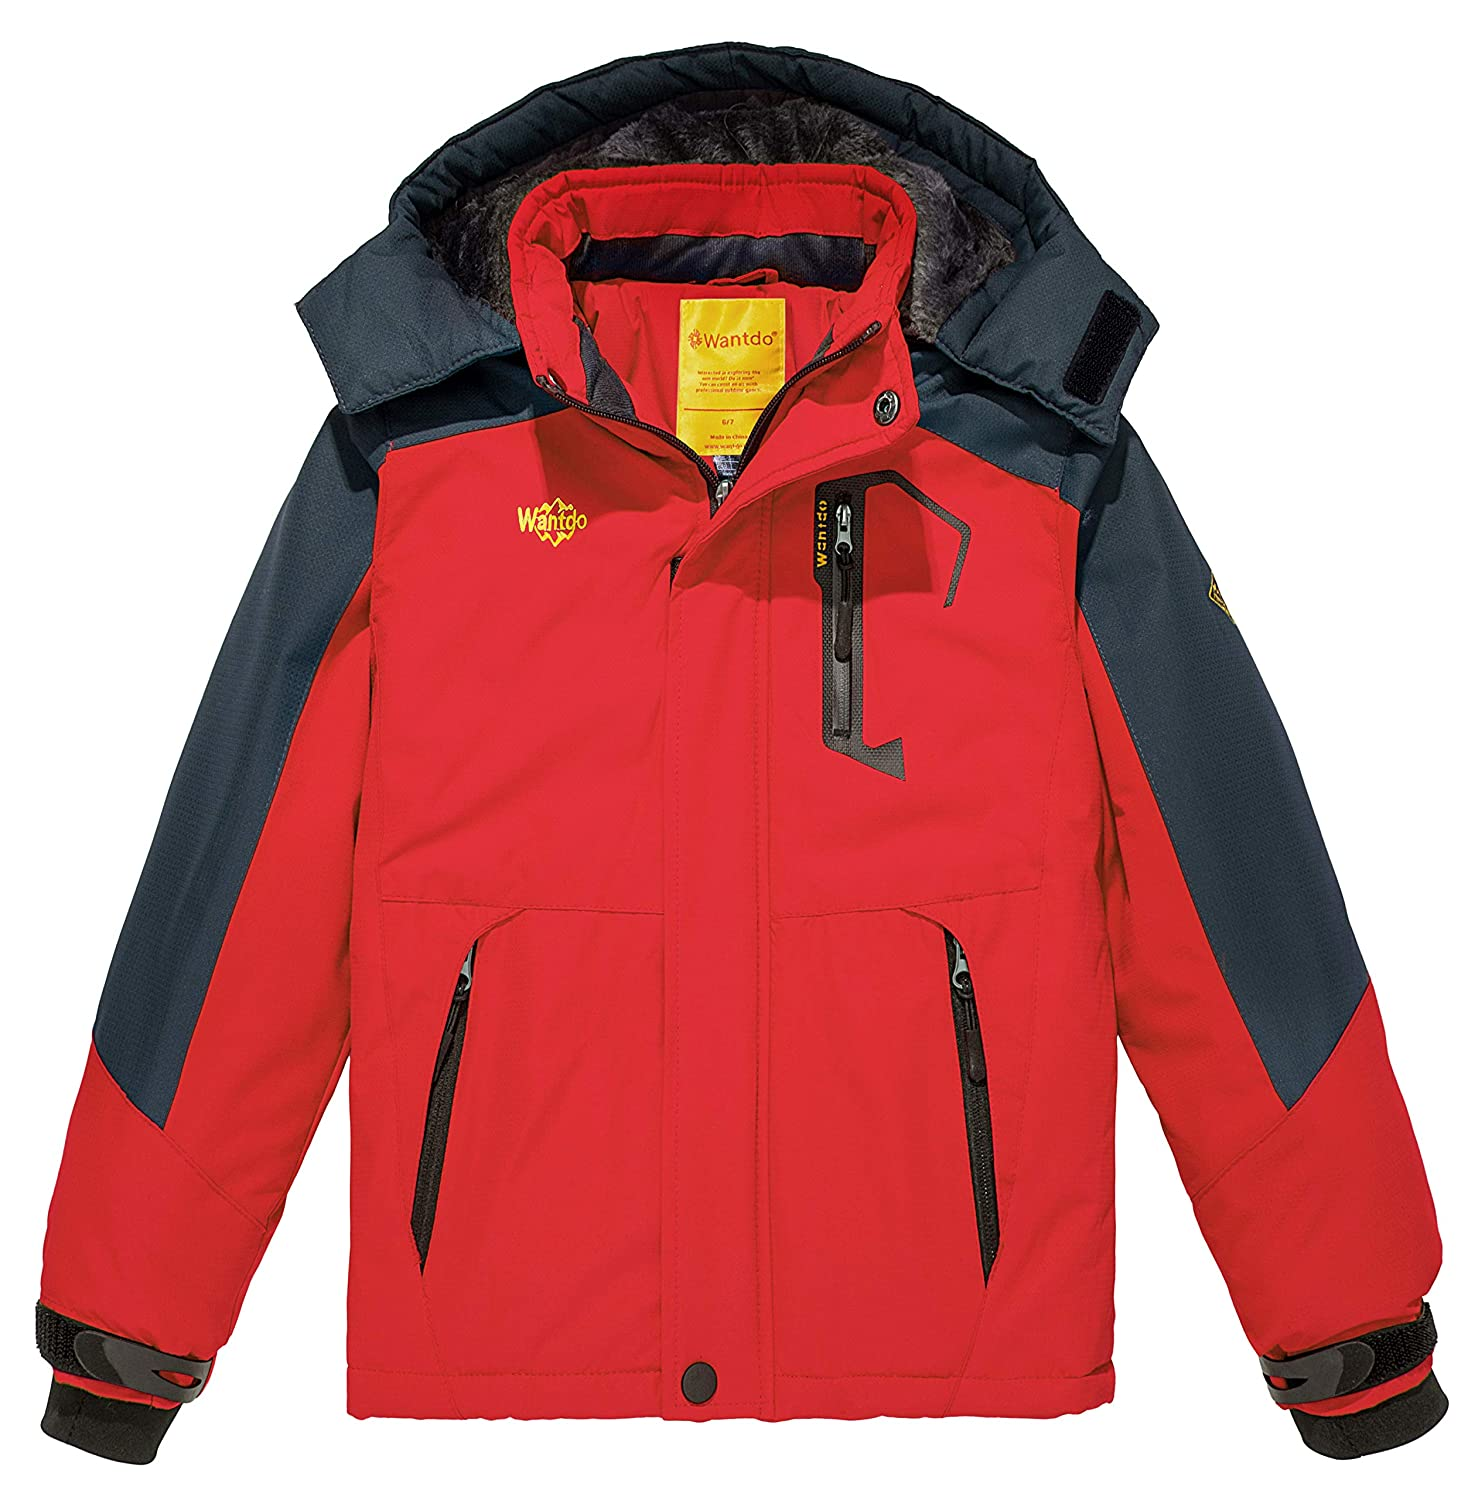 Wantdo Boy's Hooded Ski Fleece Jacket Waterproof Raincoats Outwear